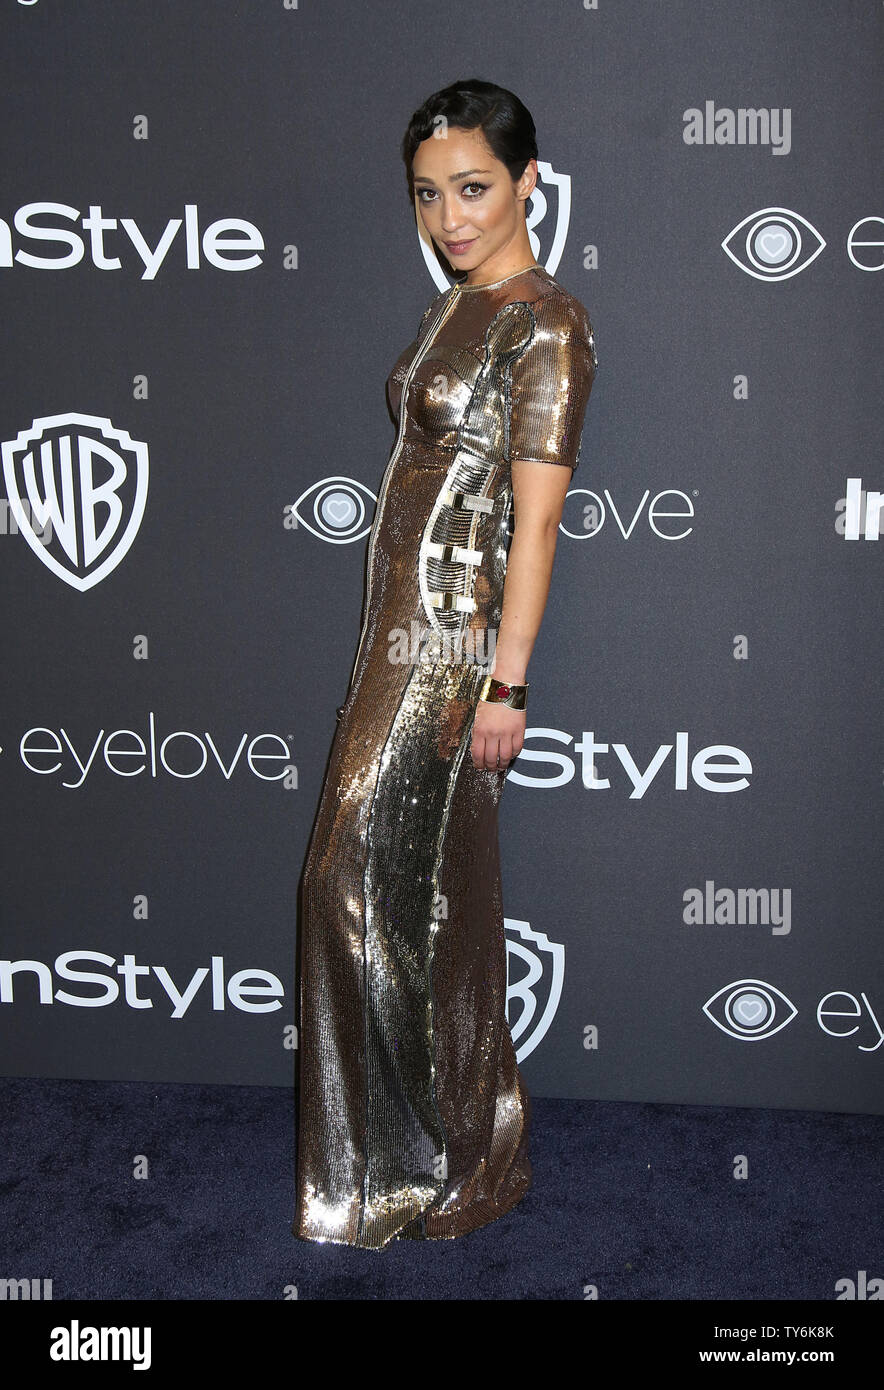 Ruth Negga attends the 18th annual InStyle and Warner Bros. Golden Globe after-party at the Beverly Hilton Hotel in Beverly Hills, California on January 8, 2017.  Photo by David Silpa/UPI - Stock Image